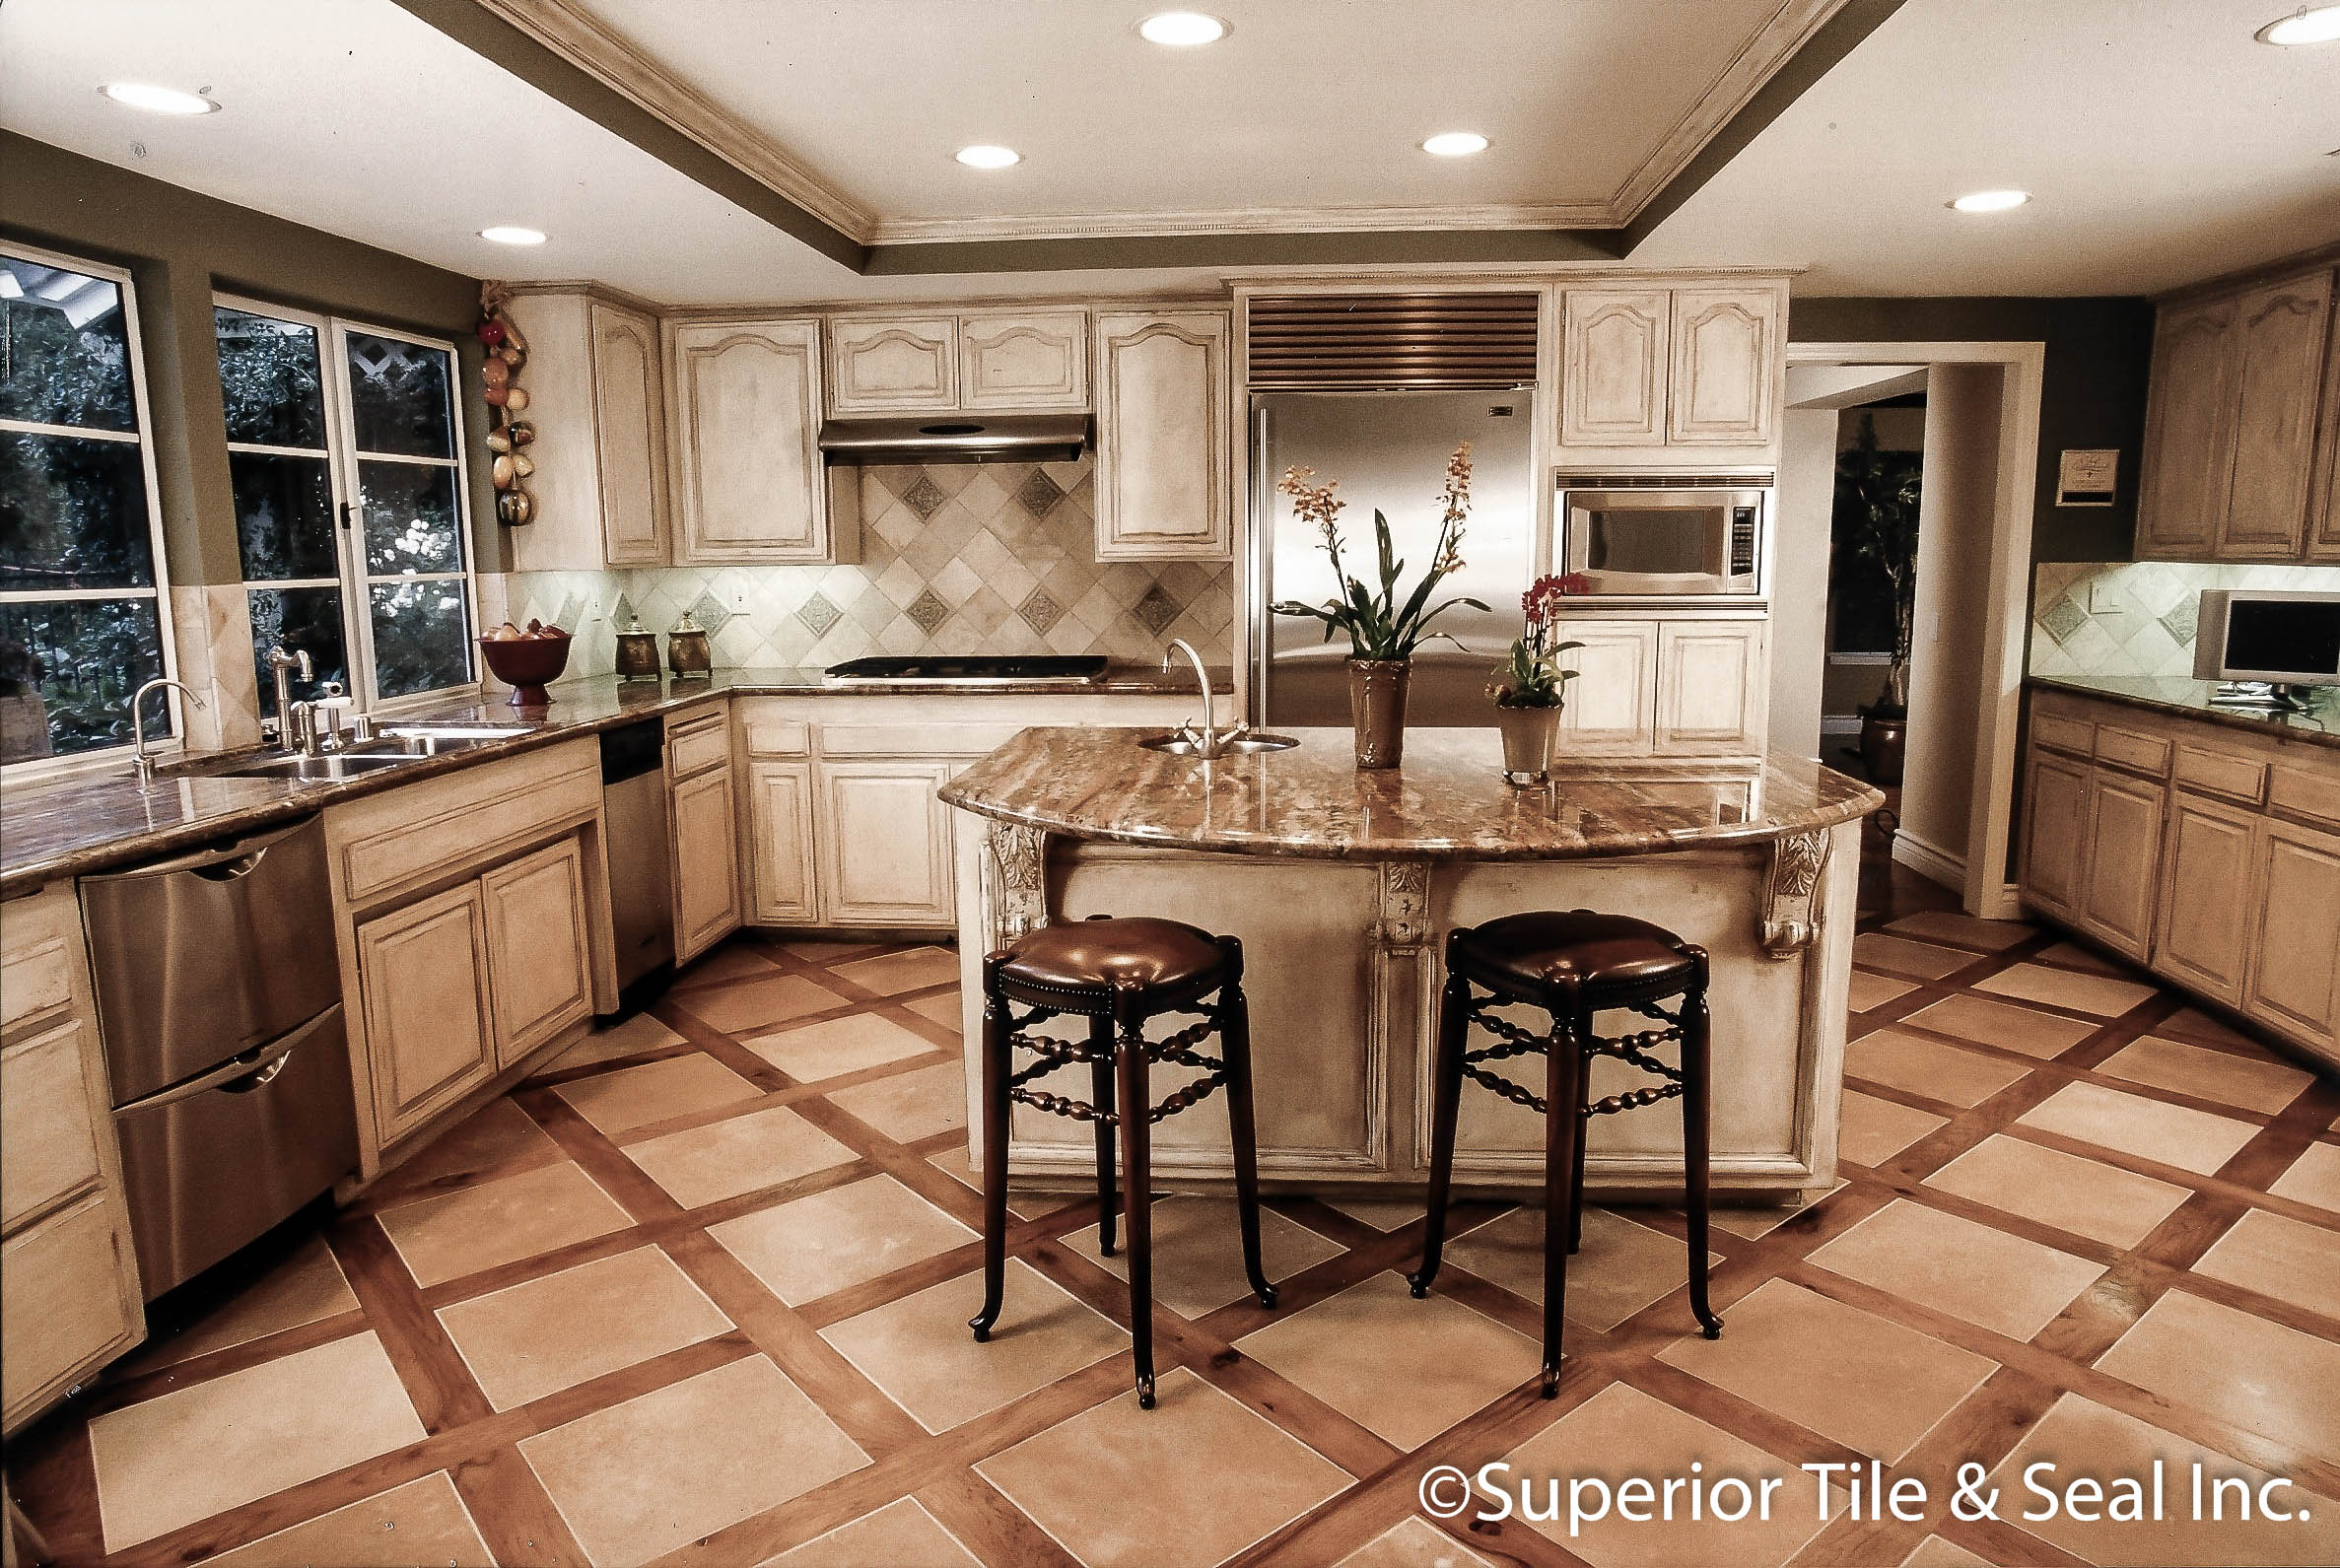 - Kitchen Marble Counter Tops With Classico Travertine Back Splash